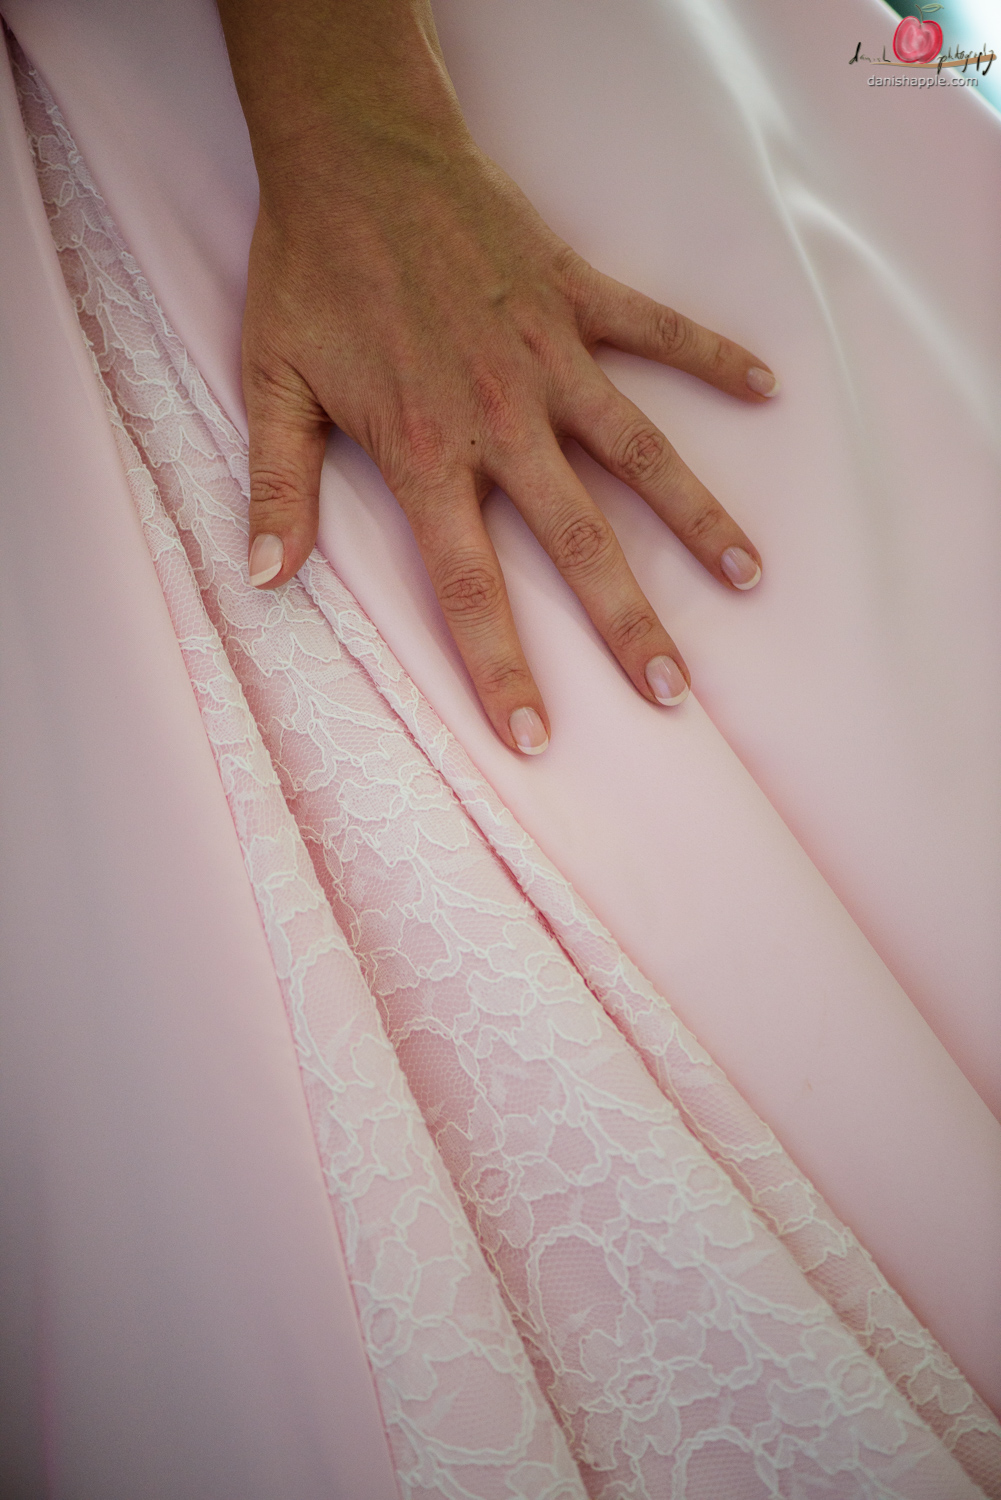 Wedding dress lace detail shot with Nikon D810